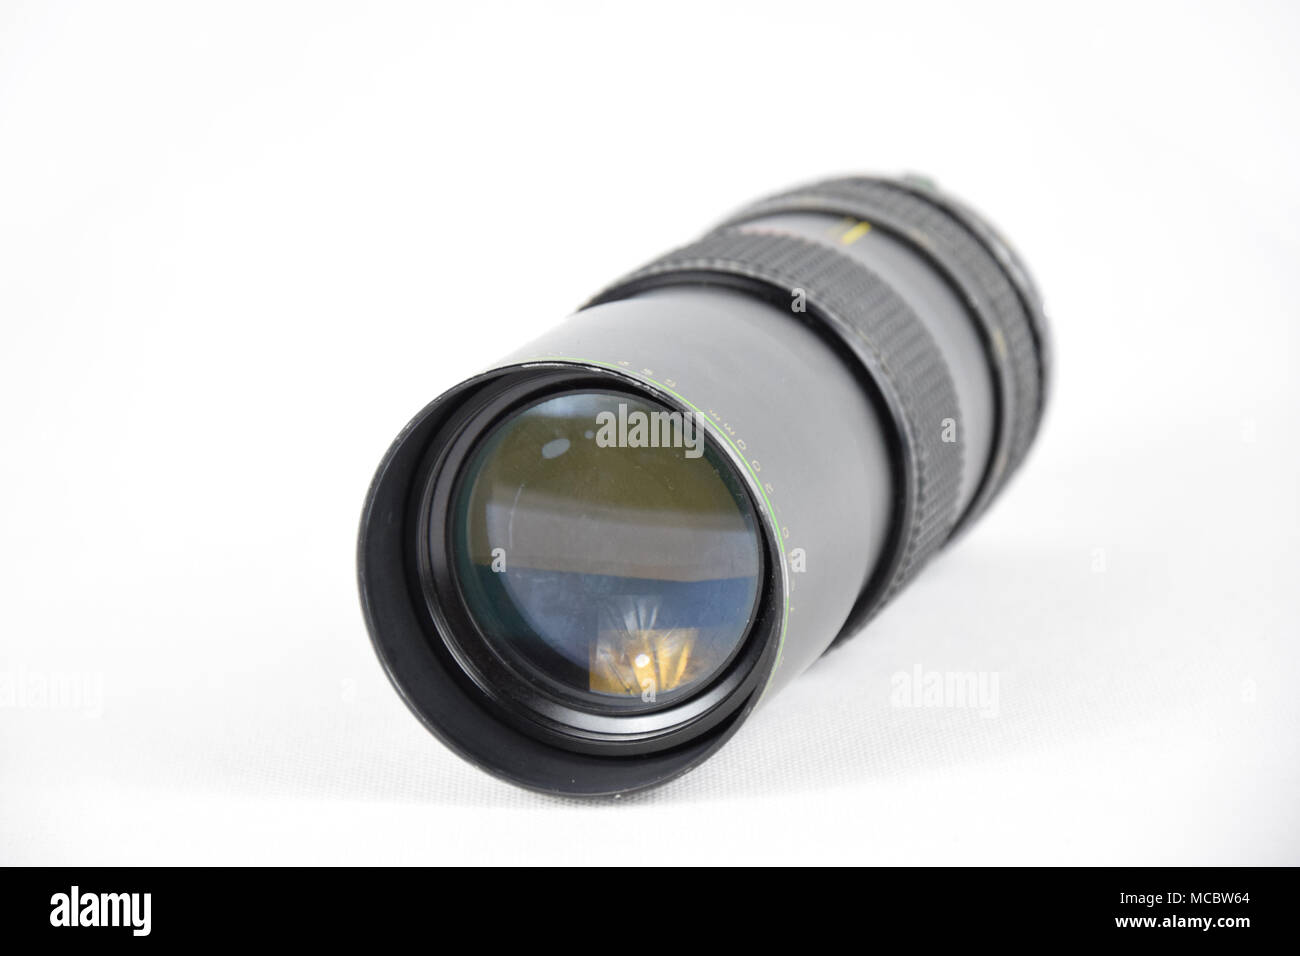 Old 80 - 200 mm Camera Lens - Isolated - Looking into the Glass Eye - Stock Image